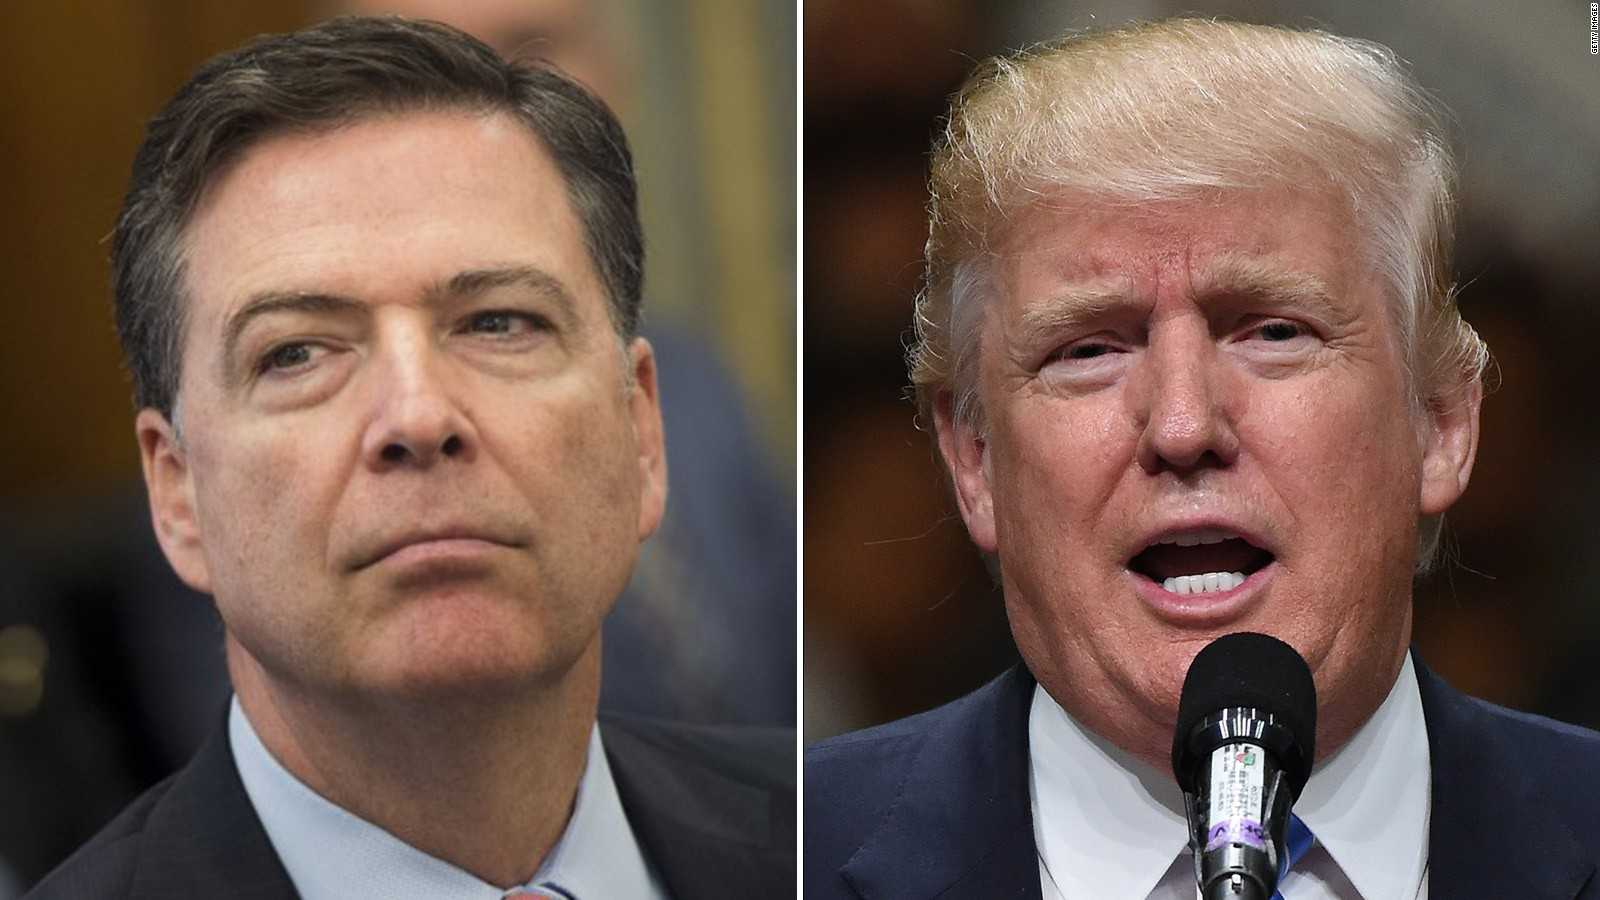 Why Trump chose war against the FBI over Russia?